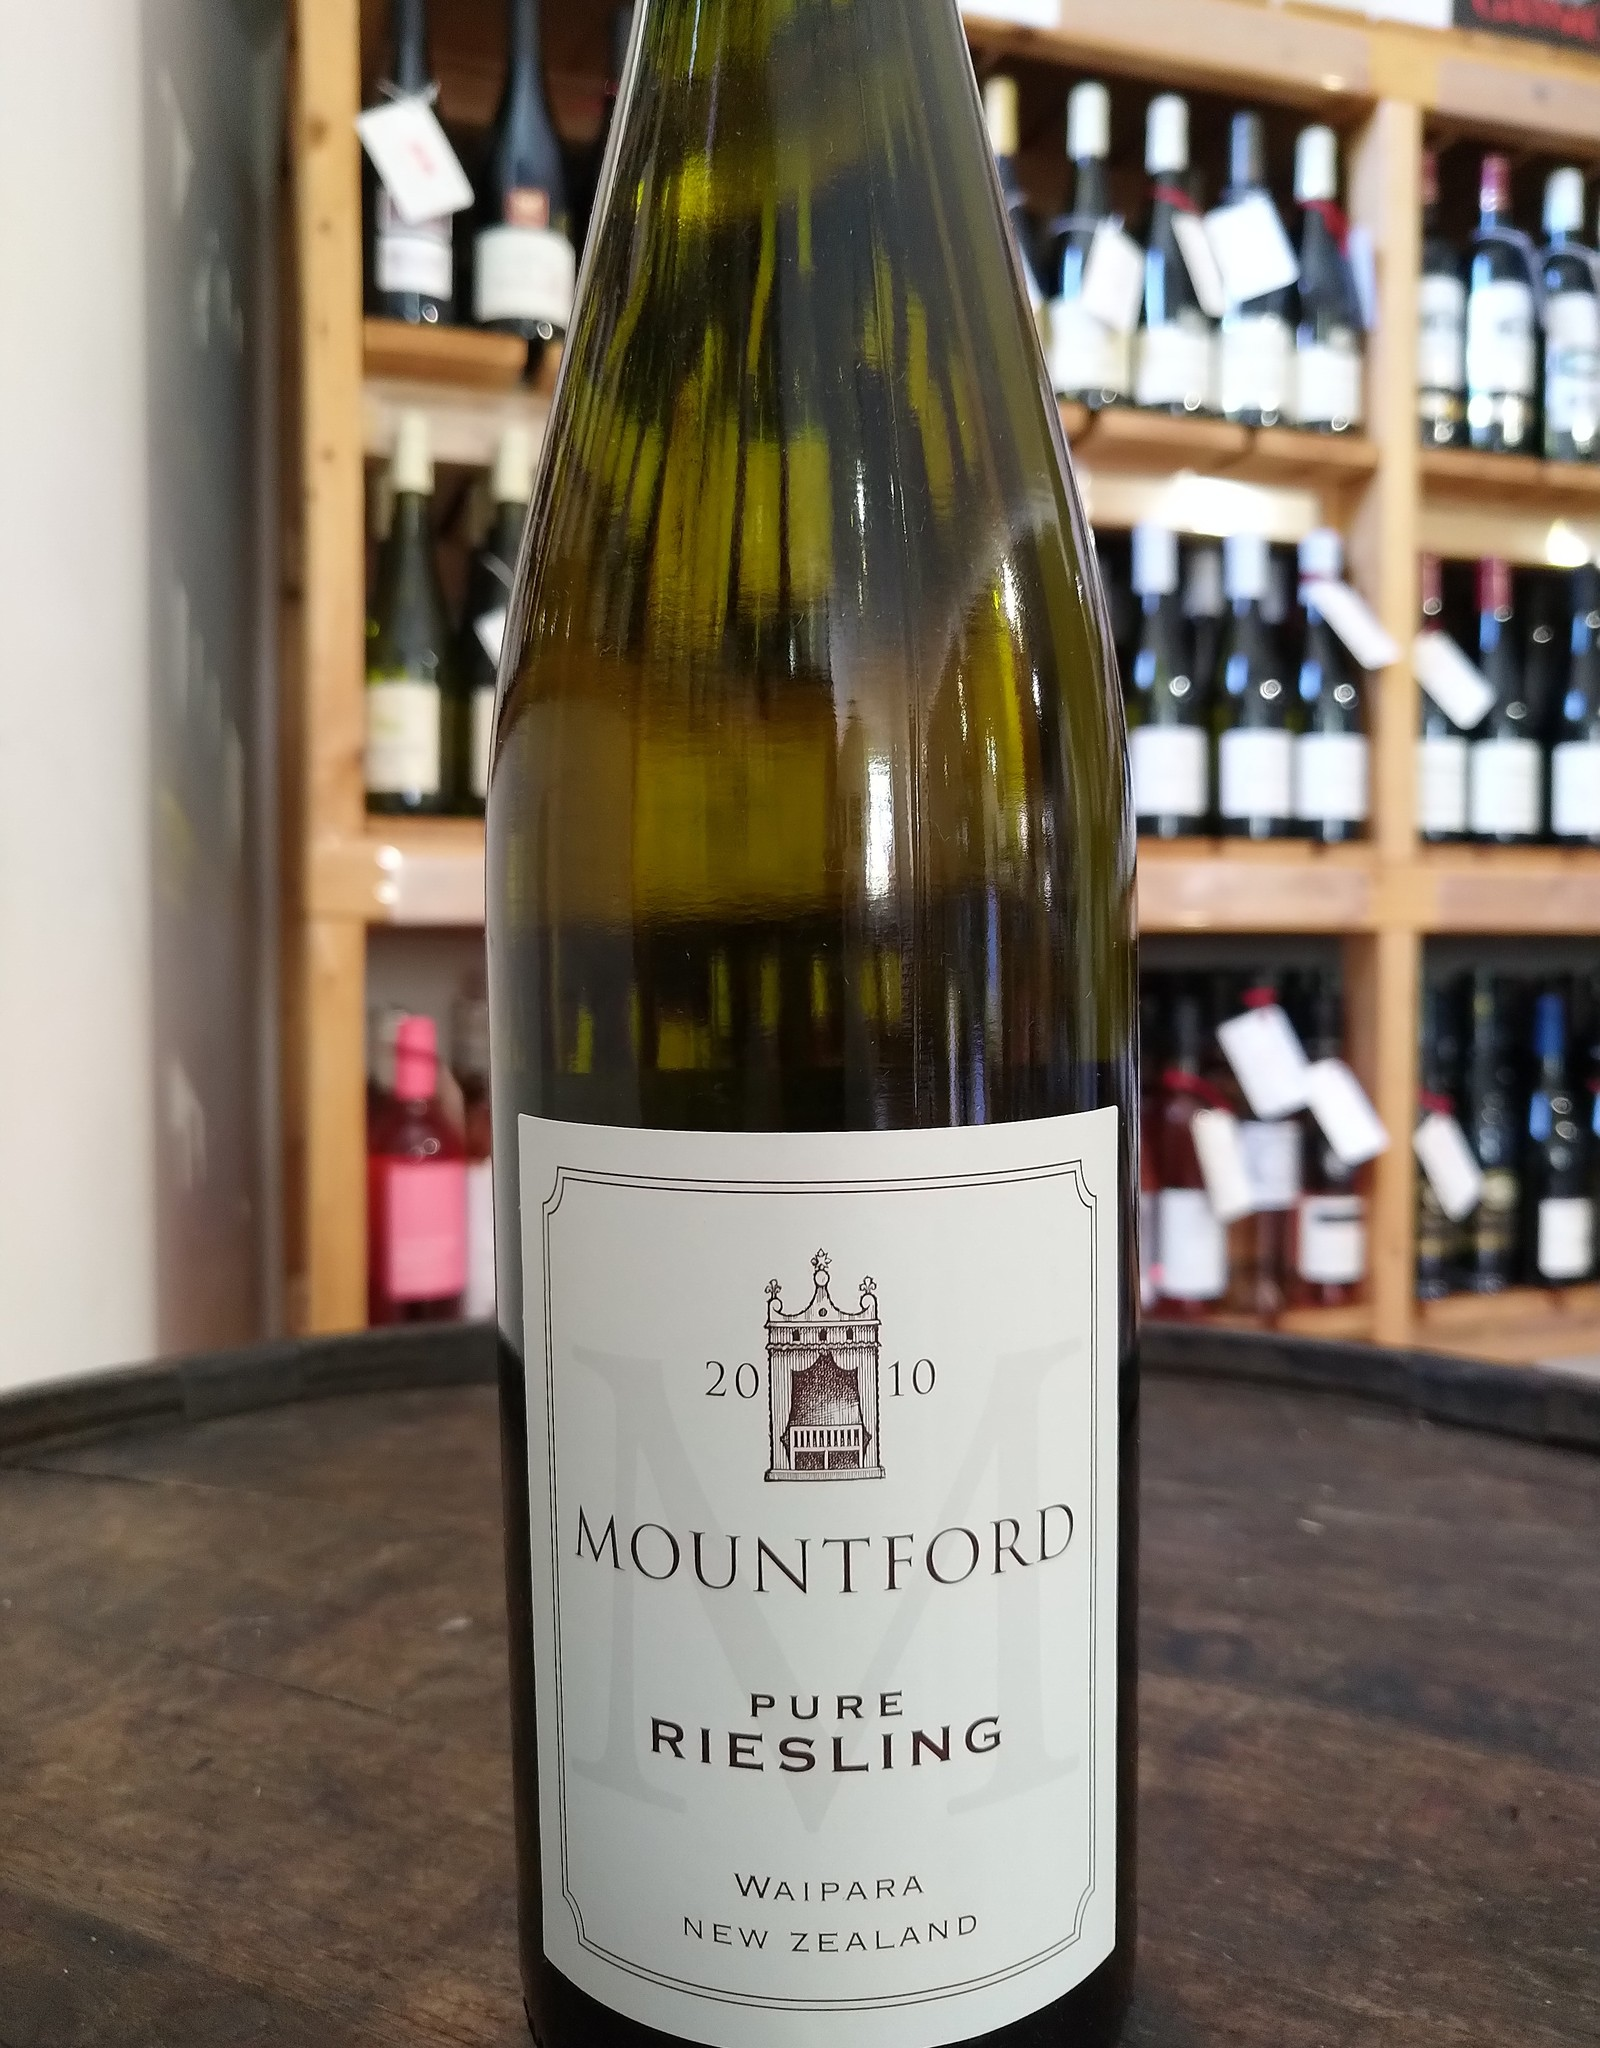 Mountford Pure Riesling 2010